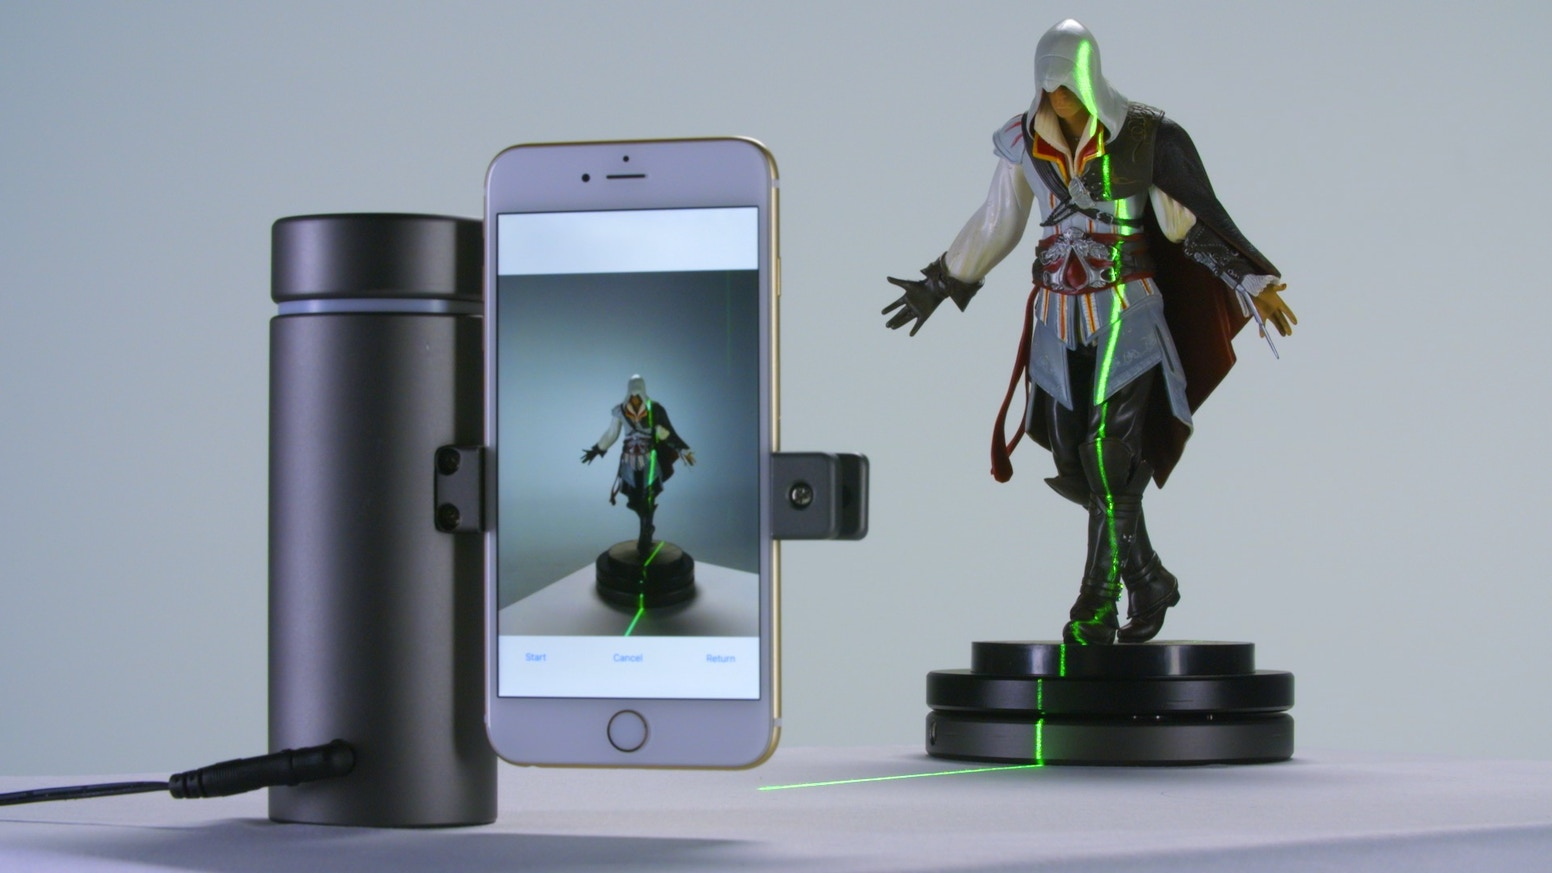 Green lasers are cool, especially when they turn your smartphone into a highly accurate and affordable 3D scanner.